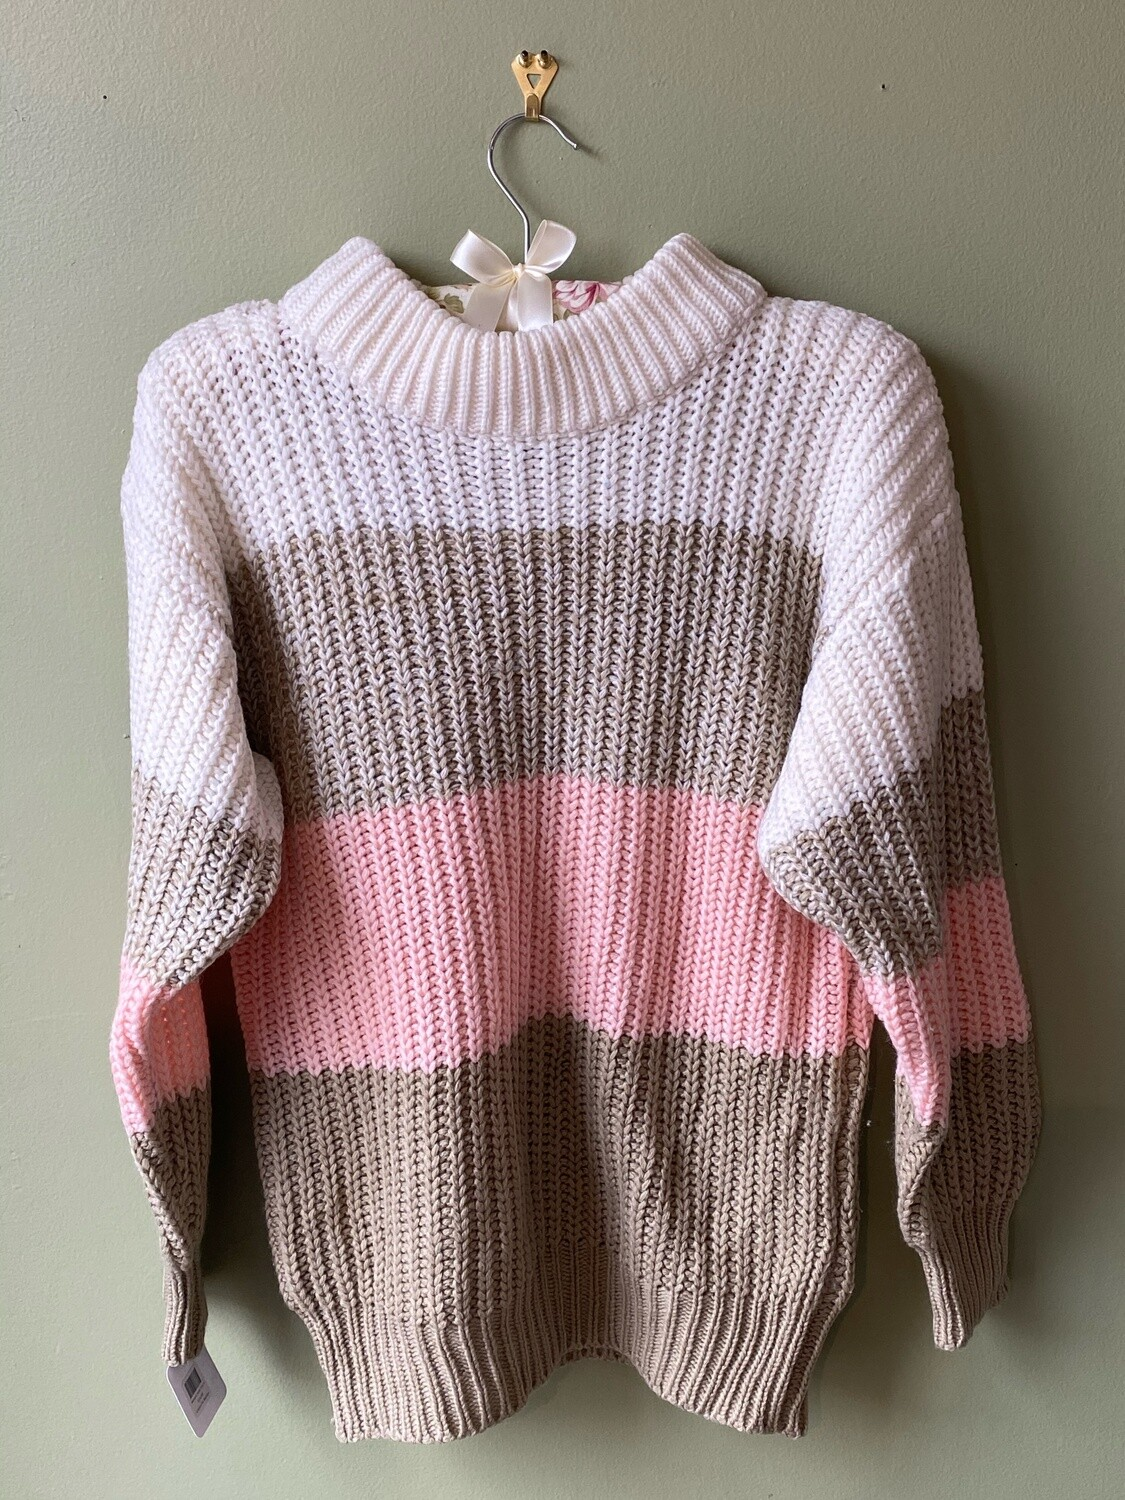 Memphis Jones Color Band Sweater, Size S, AS IS